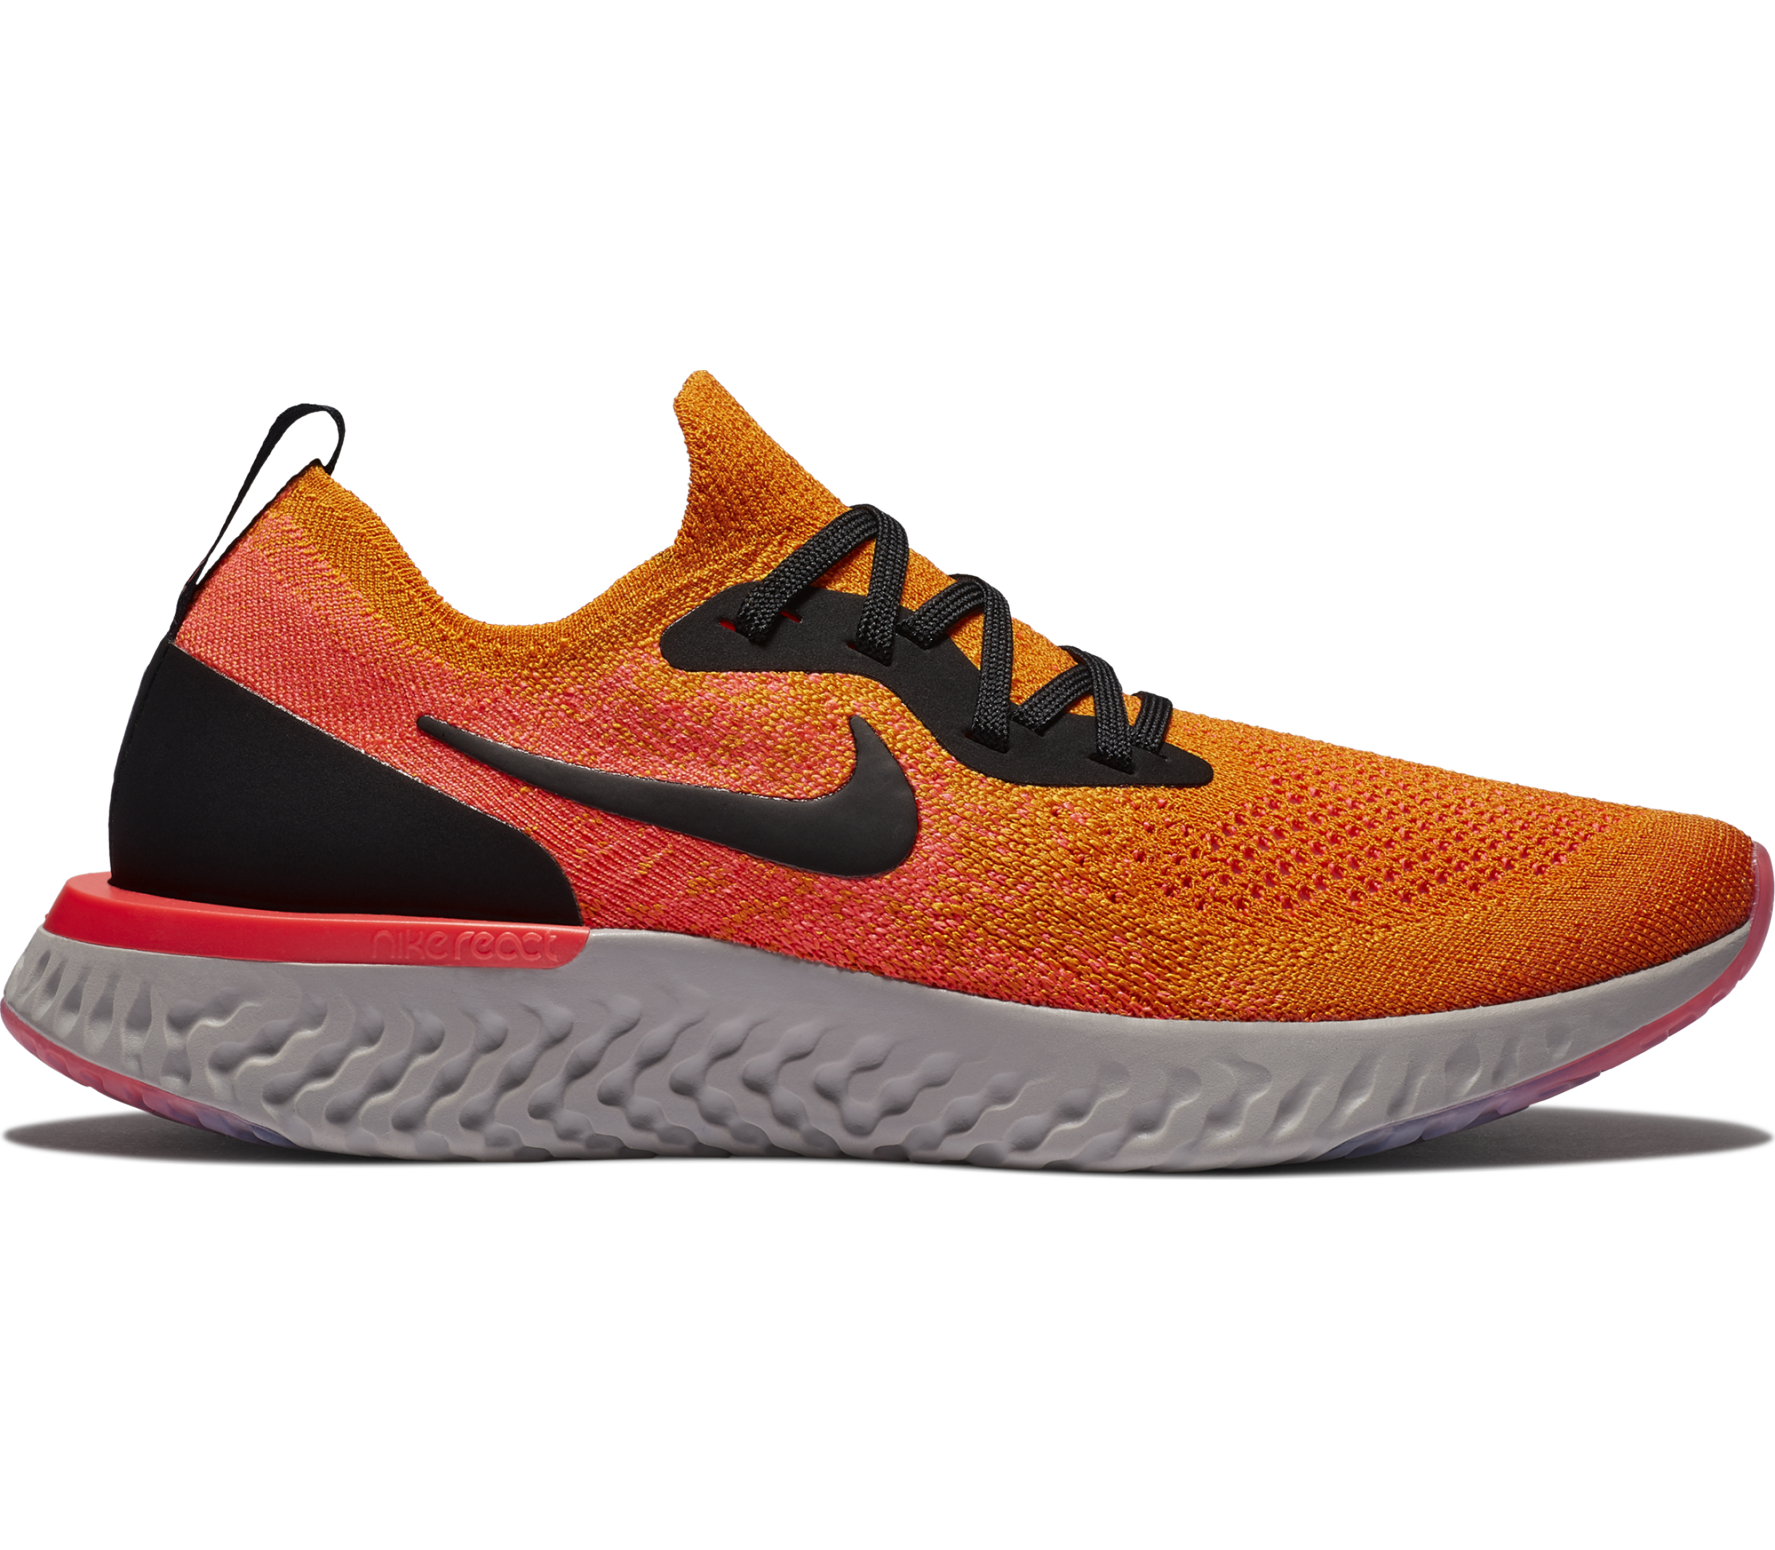 huge discount f6583 69e25 Nike - Epic React Flyknit Damen Laufschuh (orange)